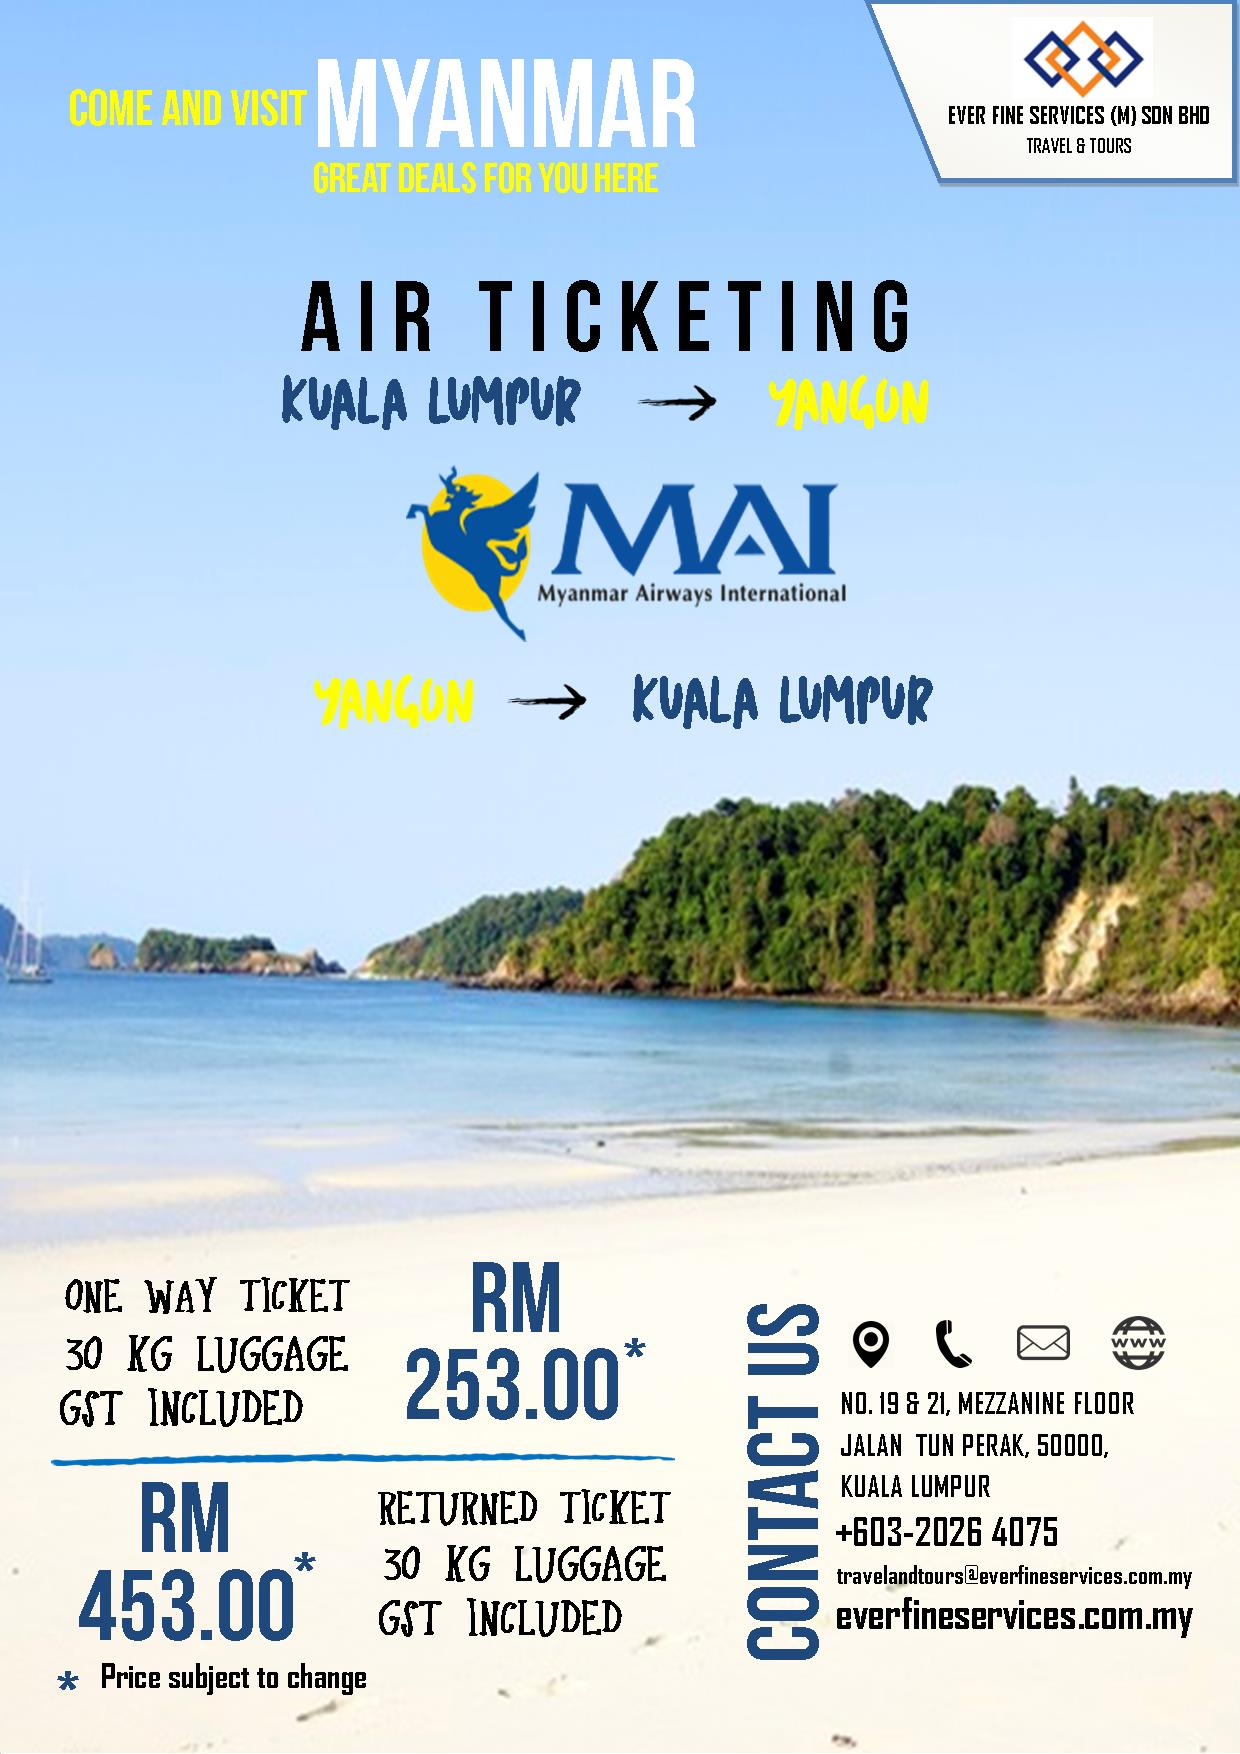 Air Ticketing